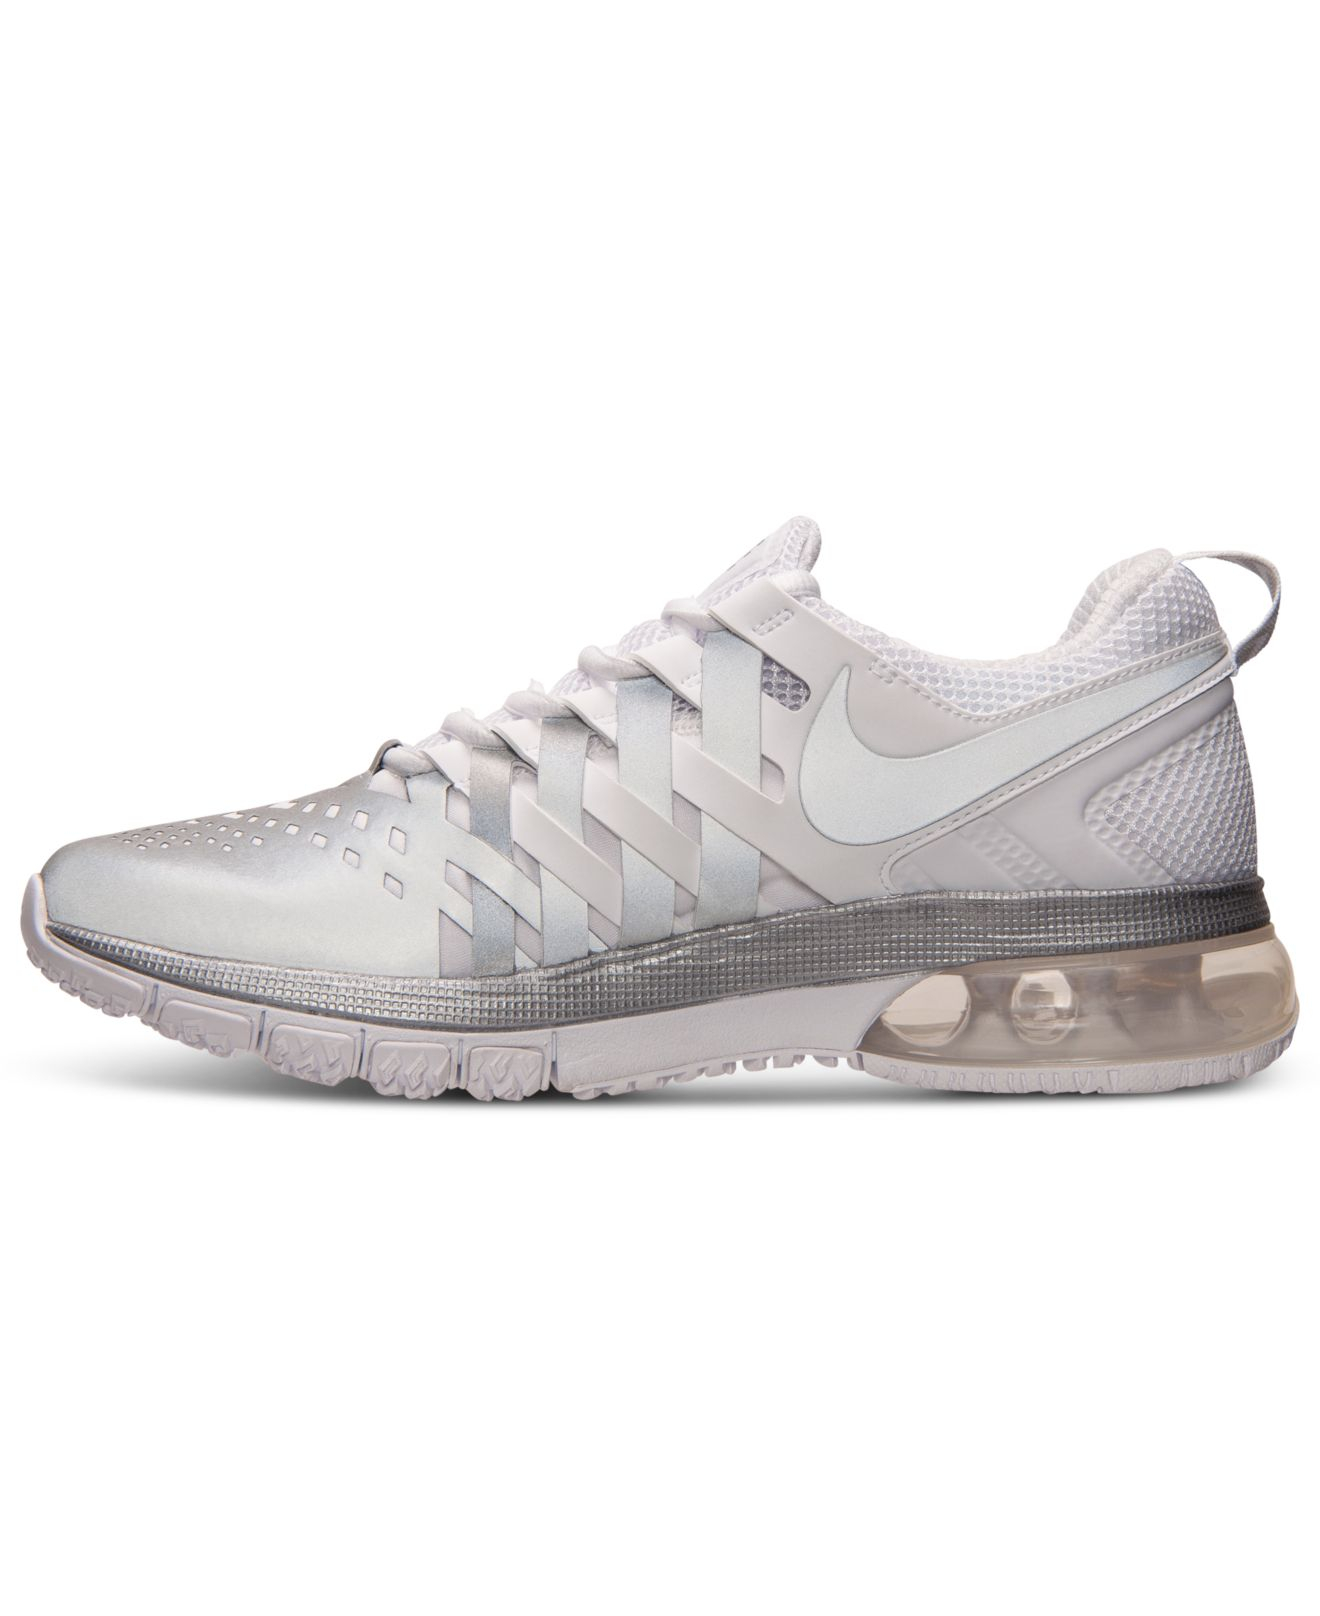 706ddb158ca1 Lyst - Nike Men s Fingertrap Air Max Training Sneakers From Finish ...